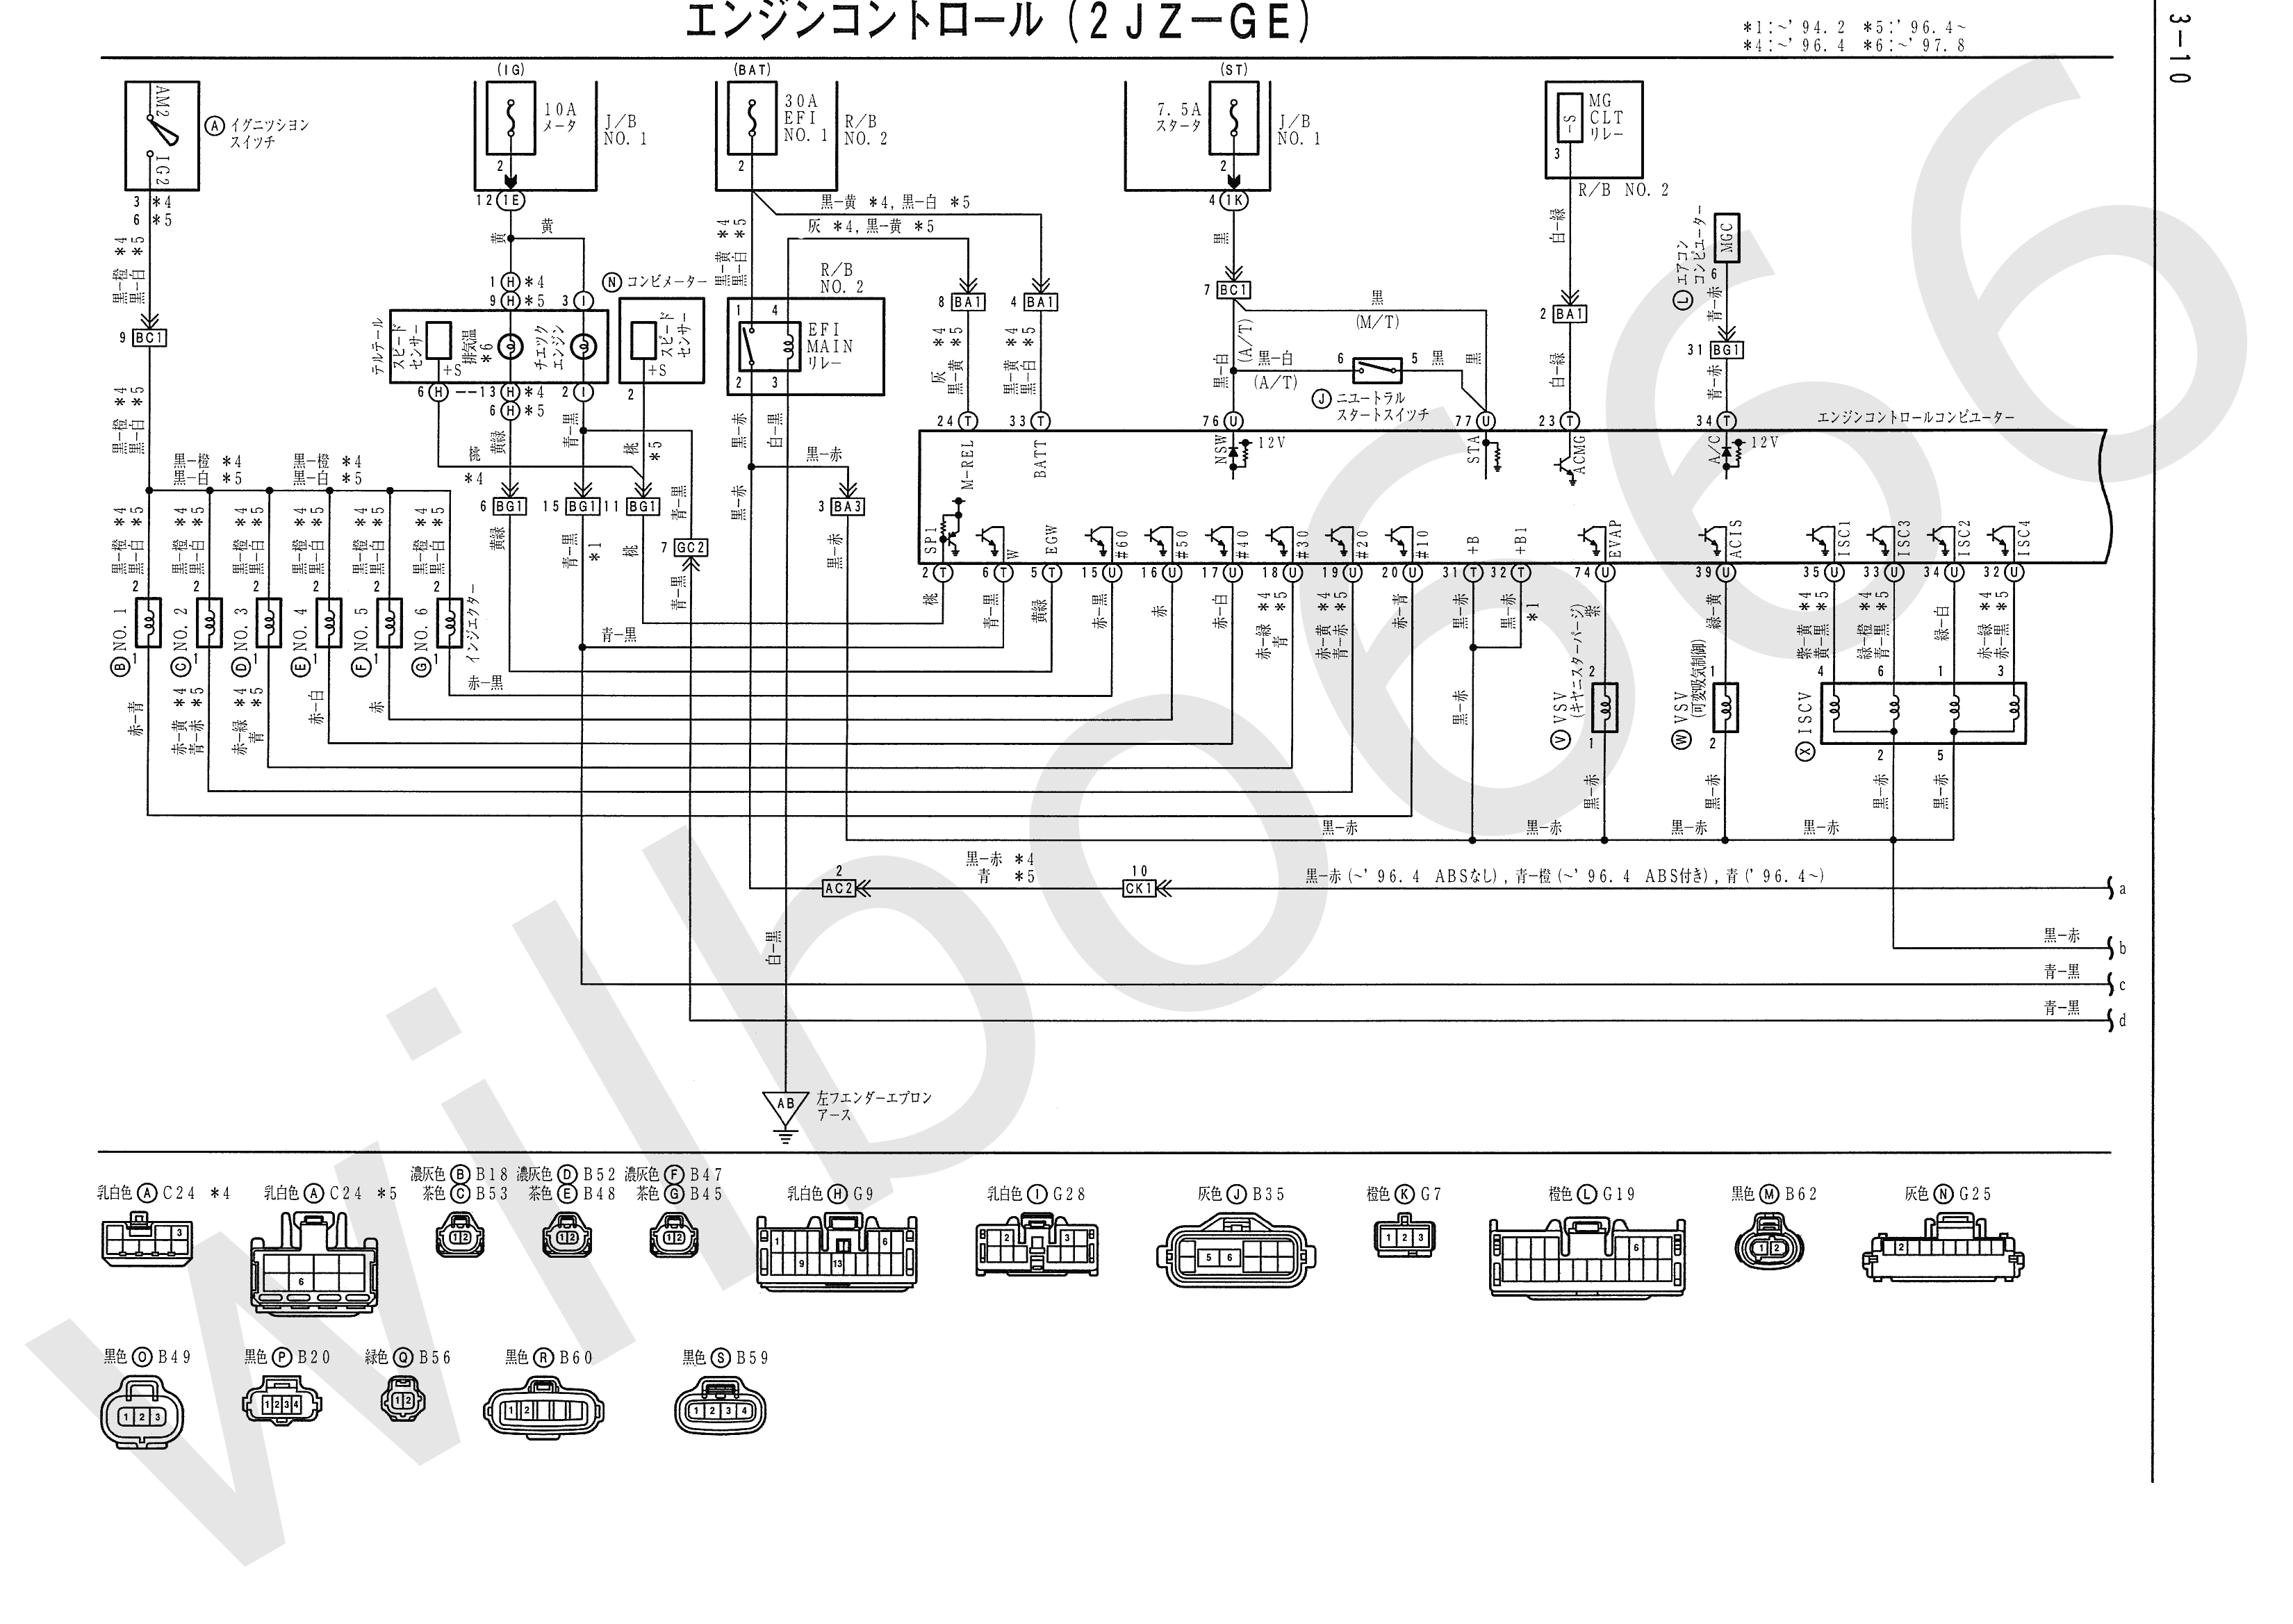 2jz fse wiring diagram